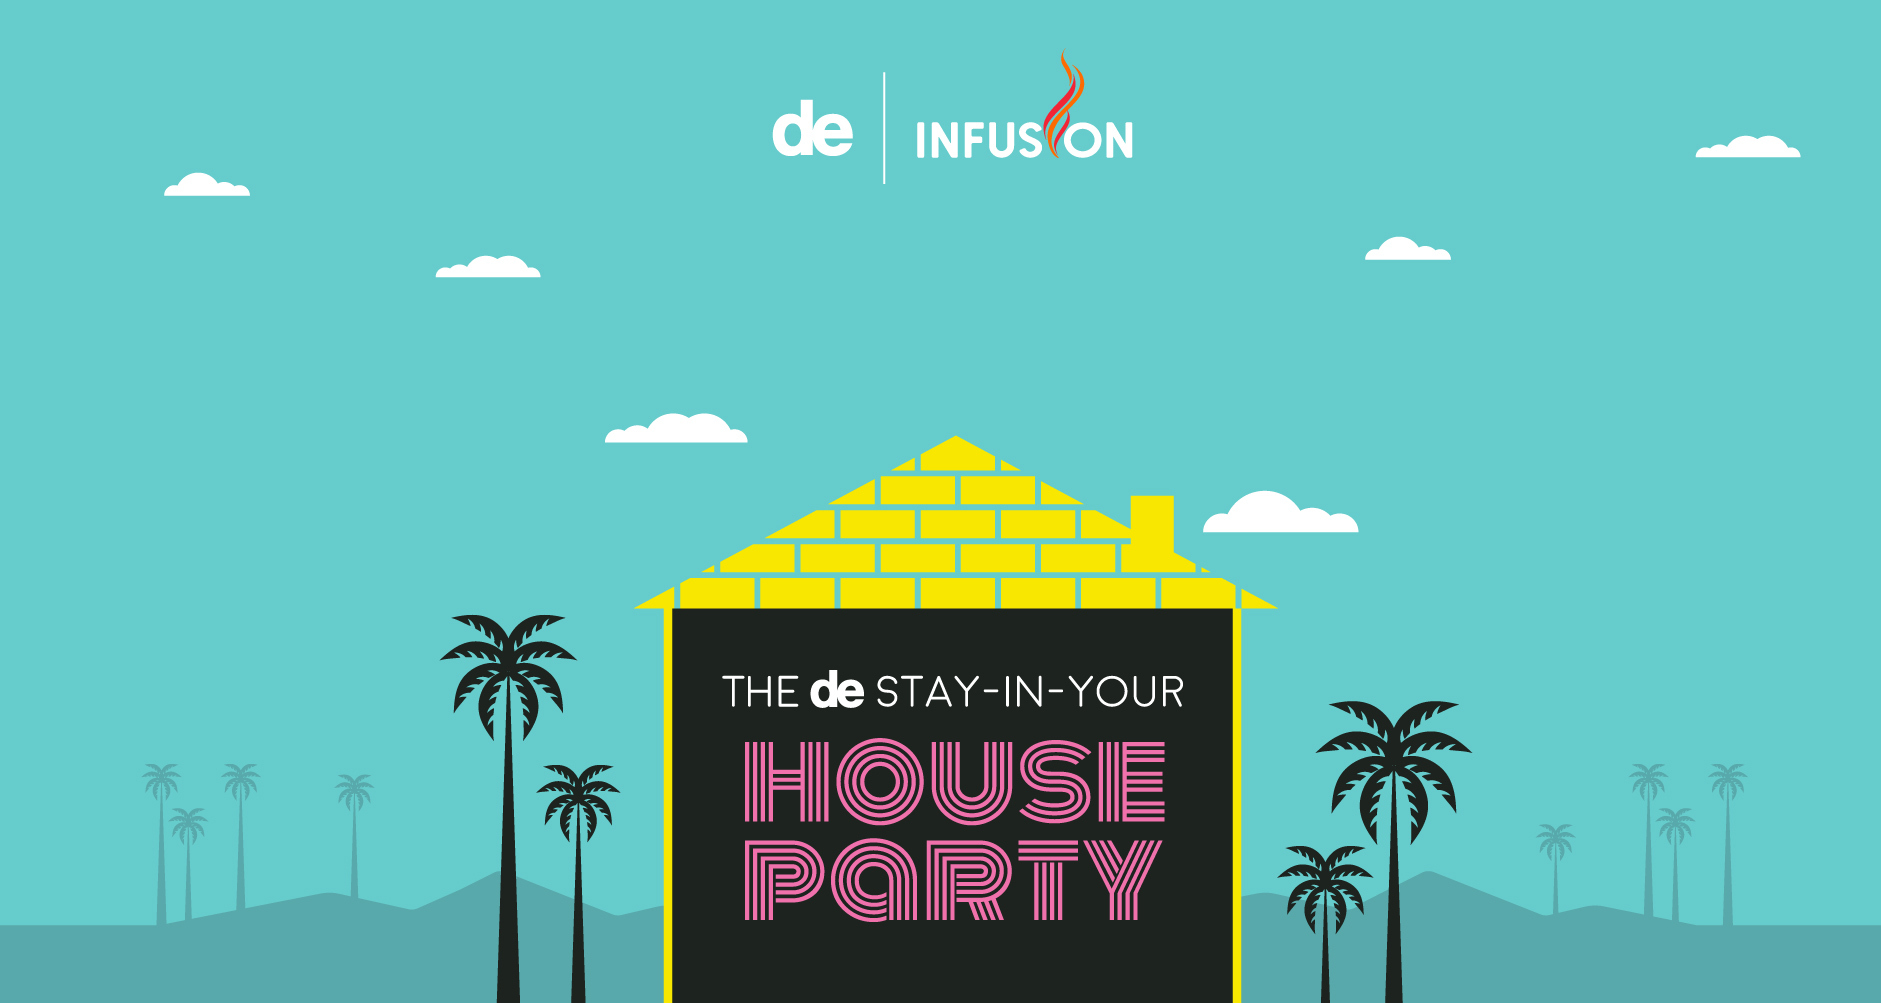 The Davis Elen stay-in-your house party